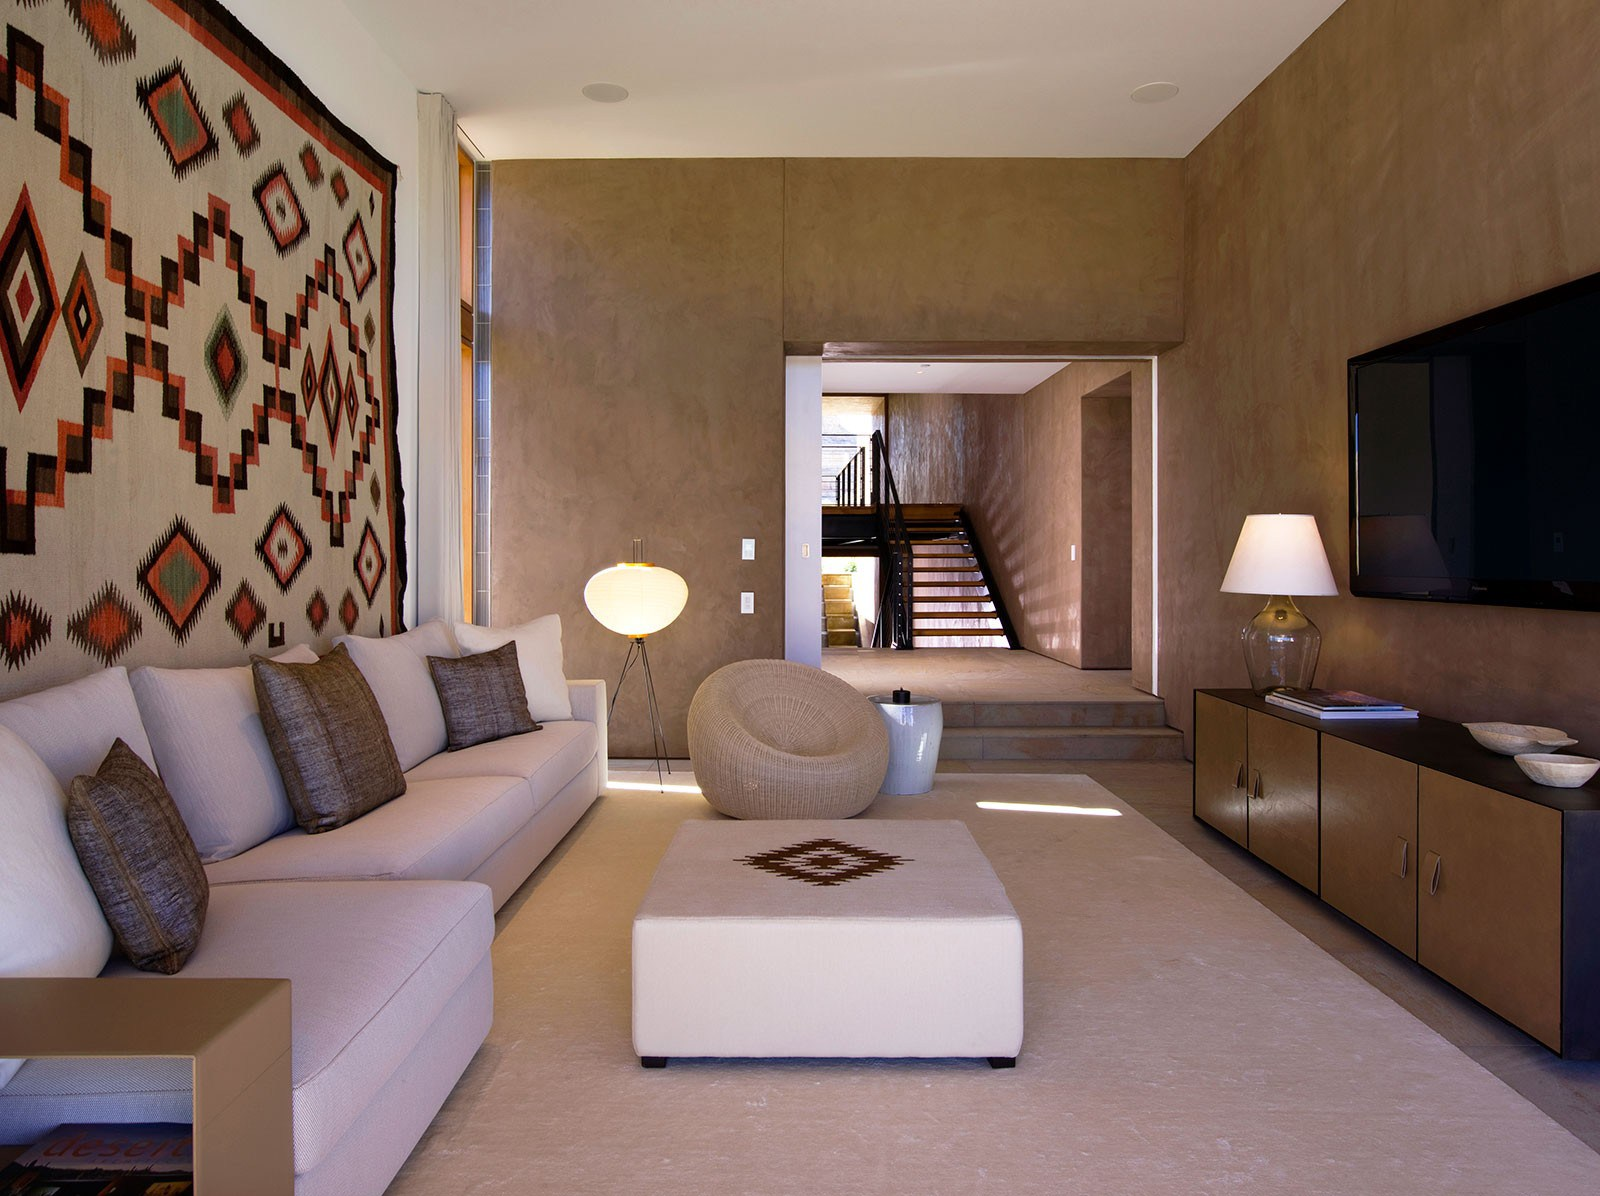 Top Luxury Hotels in America - Amangiri - Canyon Point, UT - top remote resorts in usa Top Luxury Hotels in America Top Luxury Hotels in America for the Perfect End of Summer Getaway Amangiri Canyon Point UT